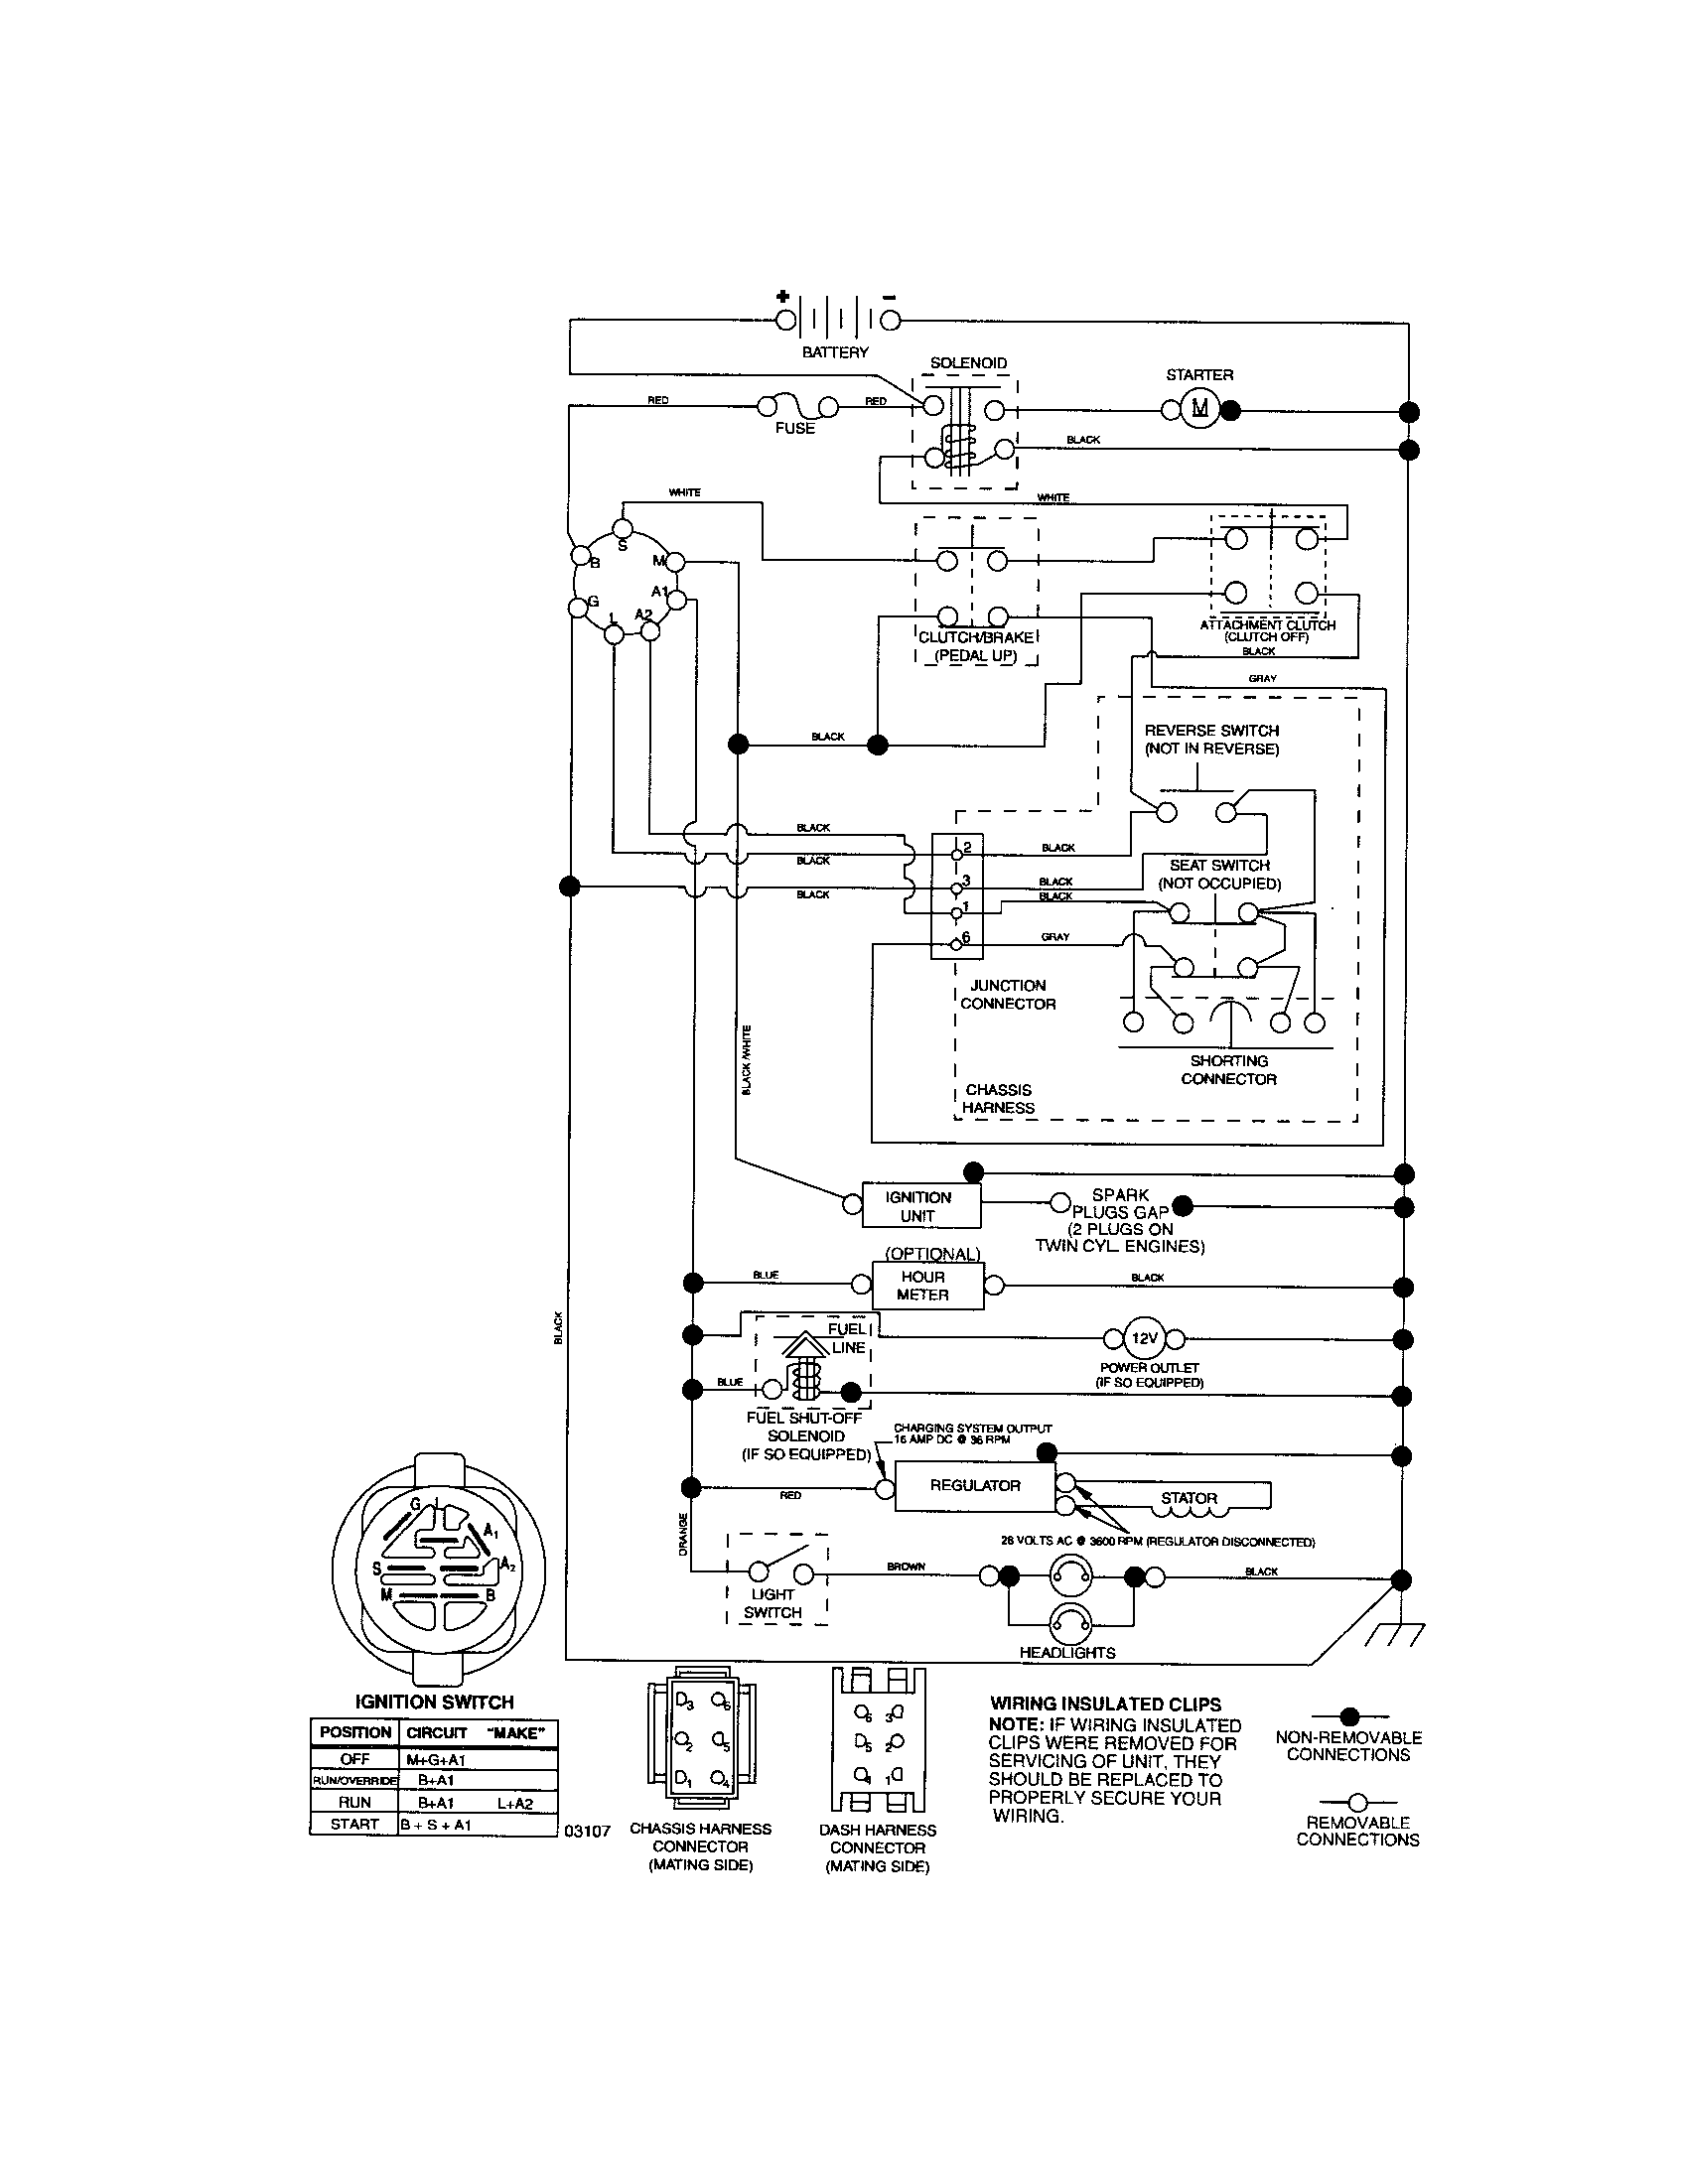 craftsman riding mower electrical diagram wiring diagram craftsman nissan 350z  wiring-diagram craftsman riding mower